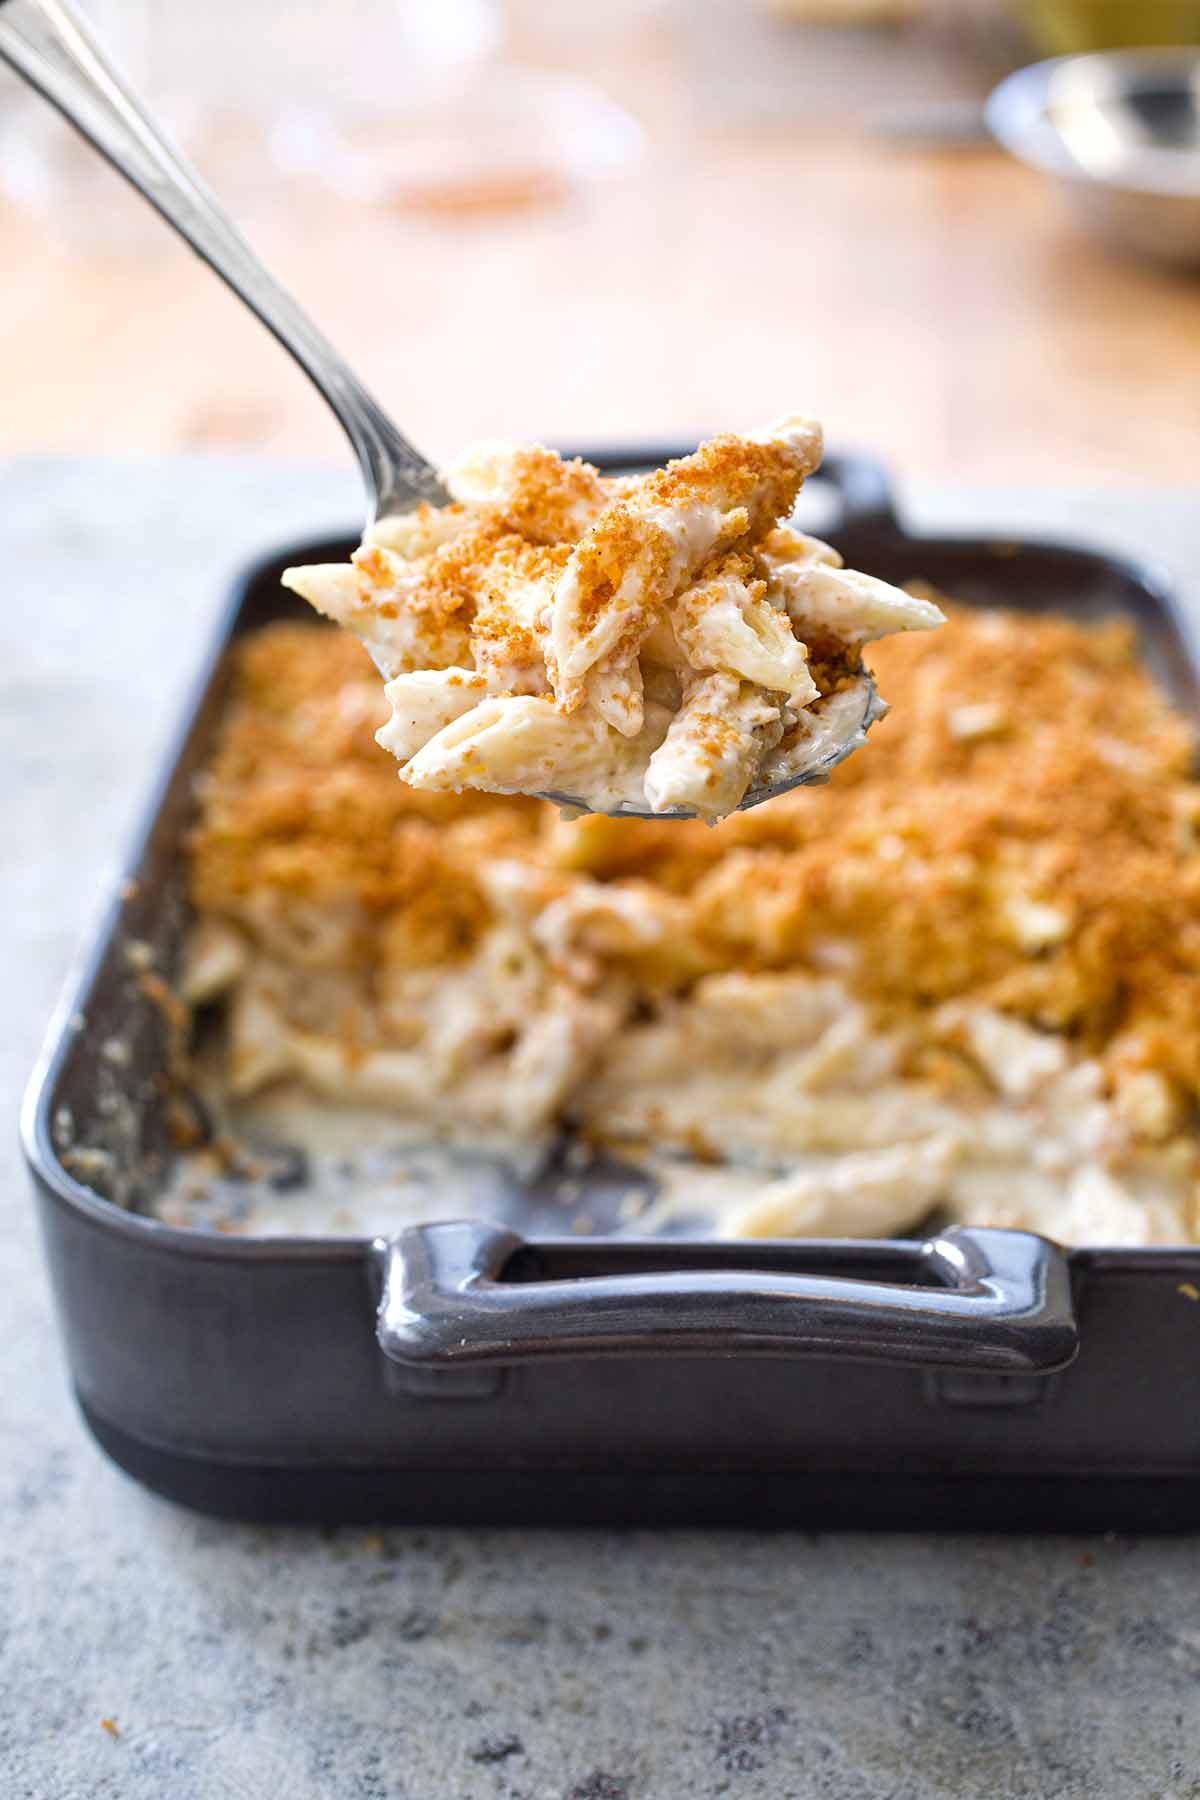 A dark grey rectangular baking dish half filled with four cheese macaroni and cheese and a metal spoon lifting a scoop out.